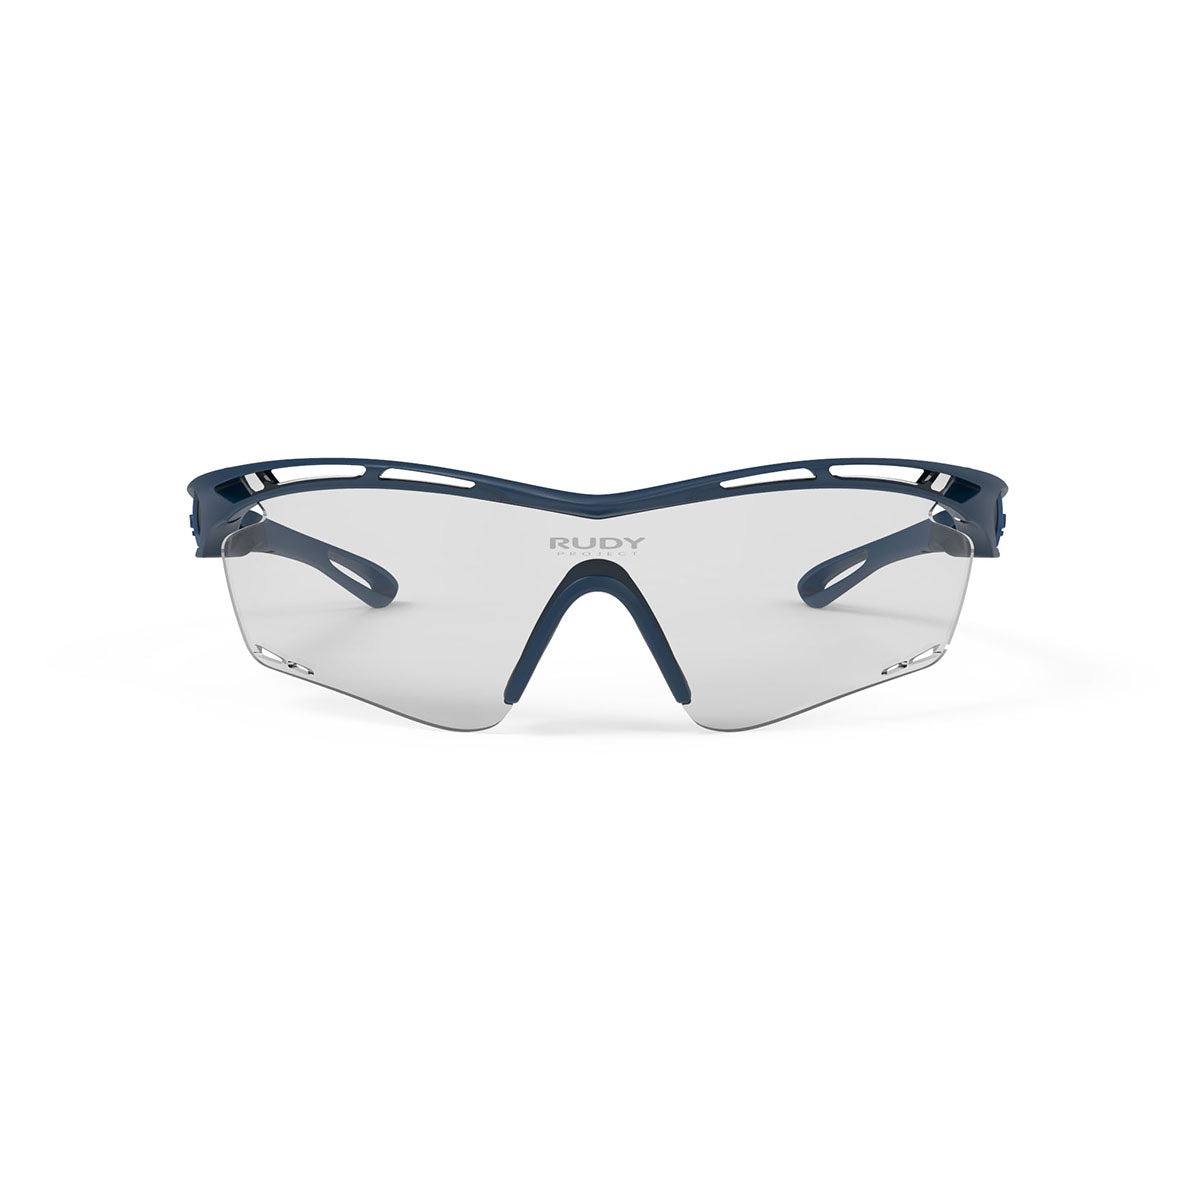 Rudy Project - Tralyx - frame color: Blue Navy Matte - lens color: ImpactX-2 Photochromic Clear to Black - photo angle: Front View Variant Hover Image